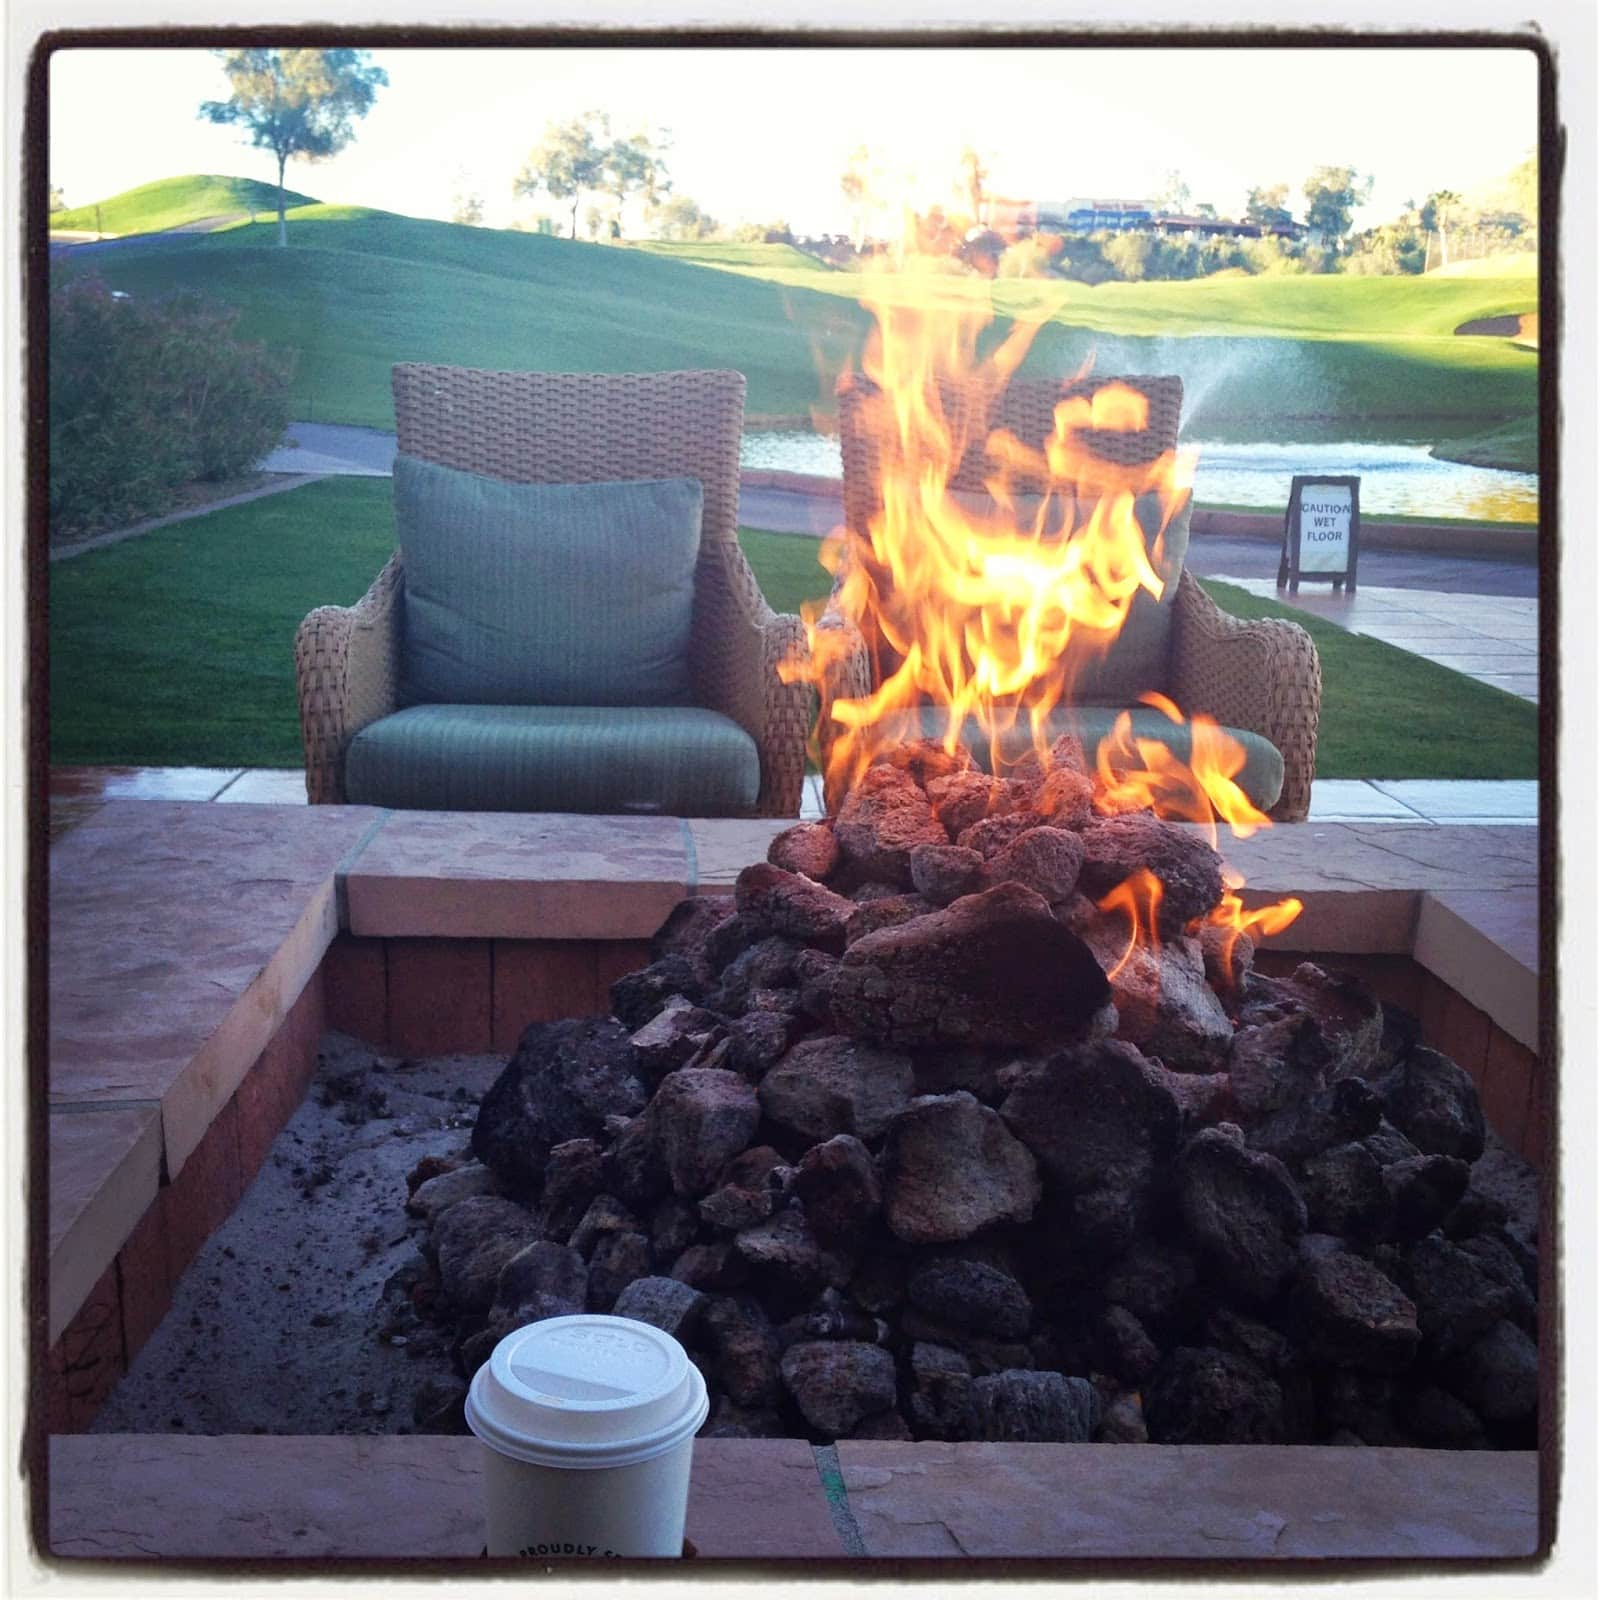 A fire pit with two chairs around it.